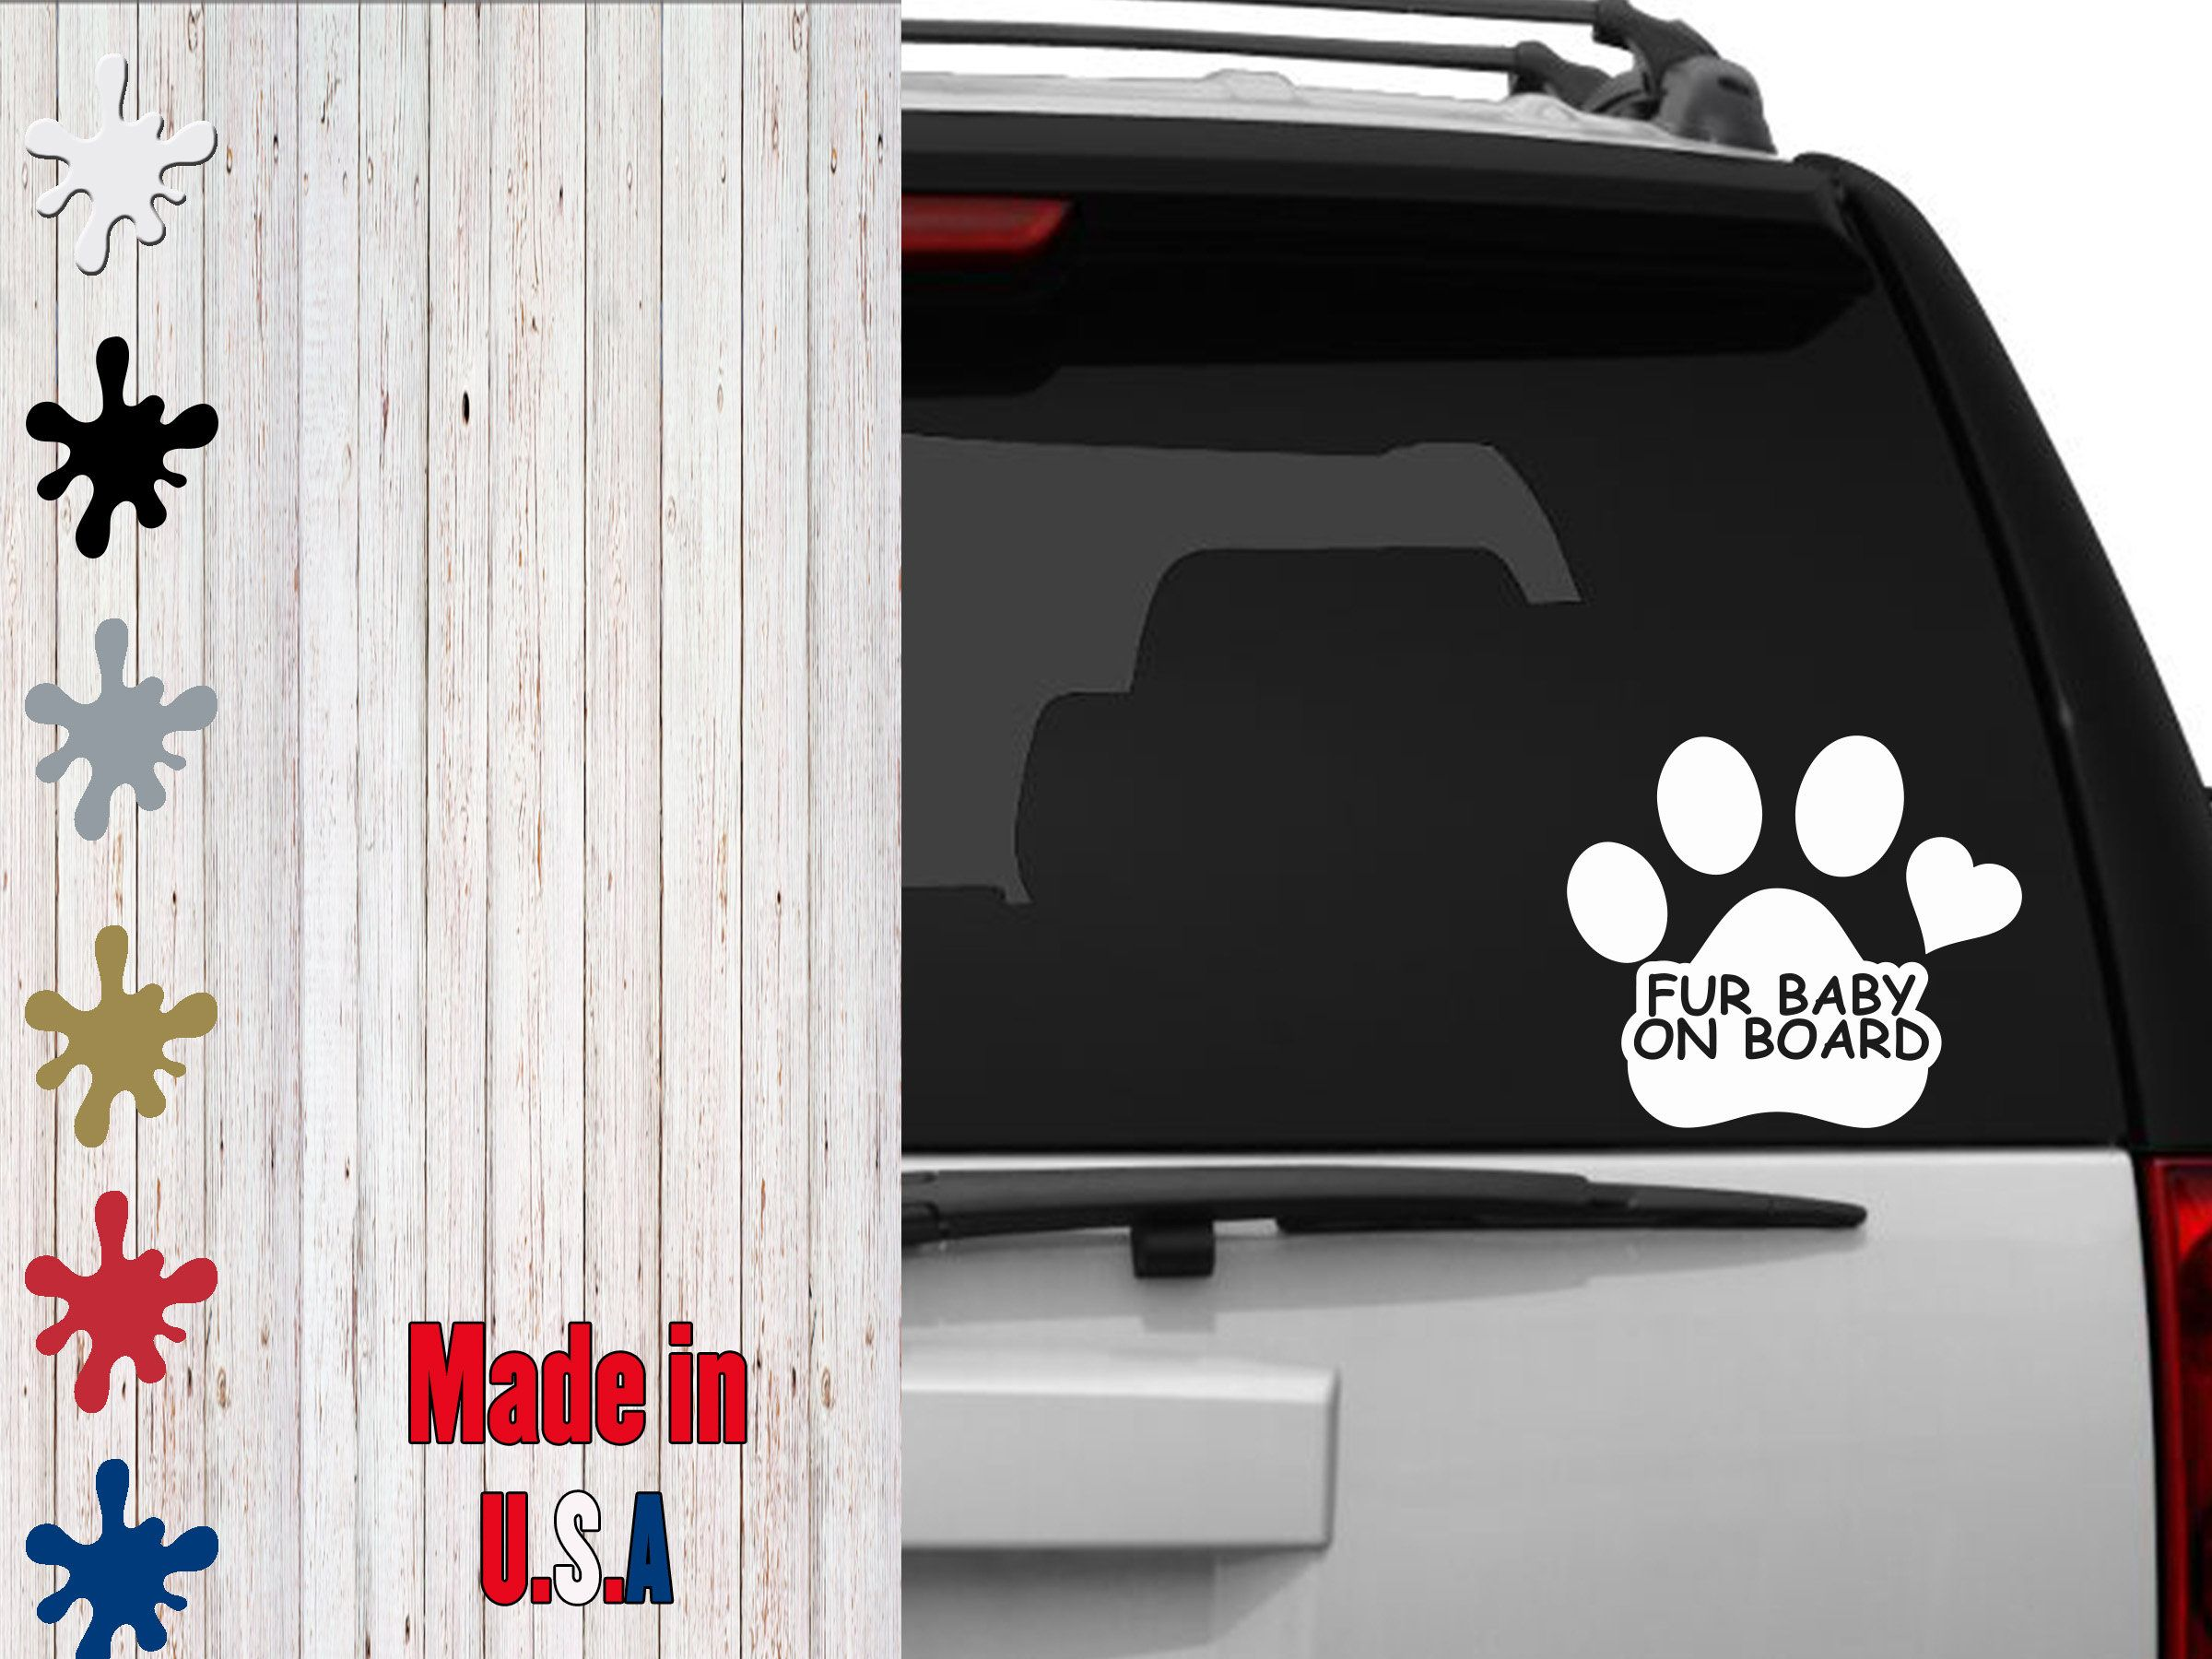 Fur Baby On Board Decal Choose Your Size Car Decal Laptop Decal By Veiledtrove On Etsy Family Pet Baby Love Mybab Fur Babies Laptop Decal Car Decals [ 1800 x 2400 Pixel ]